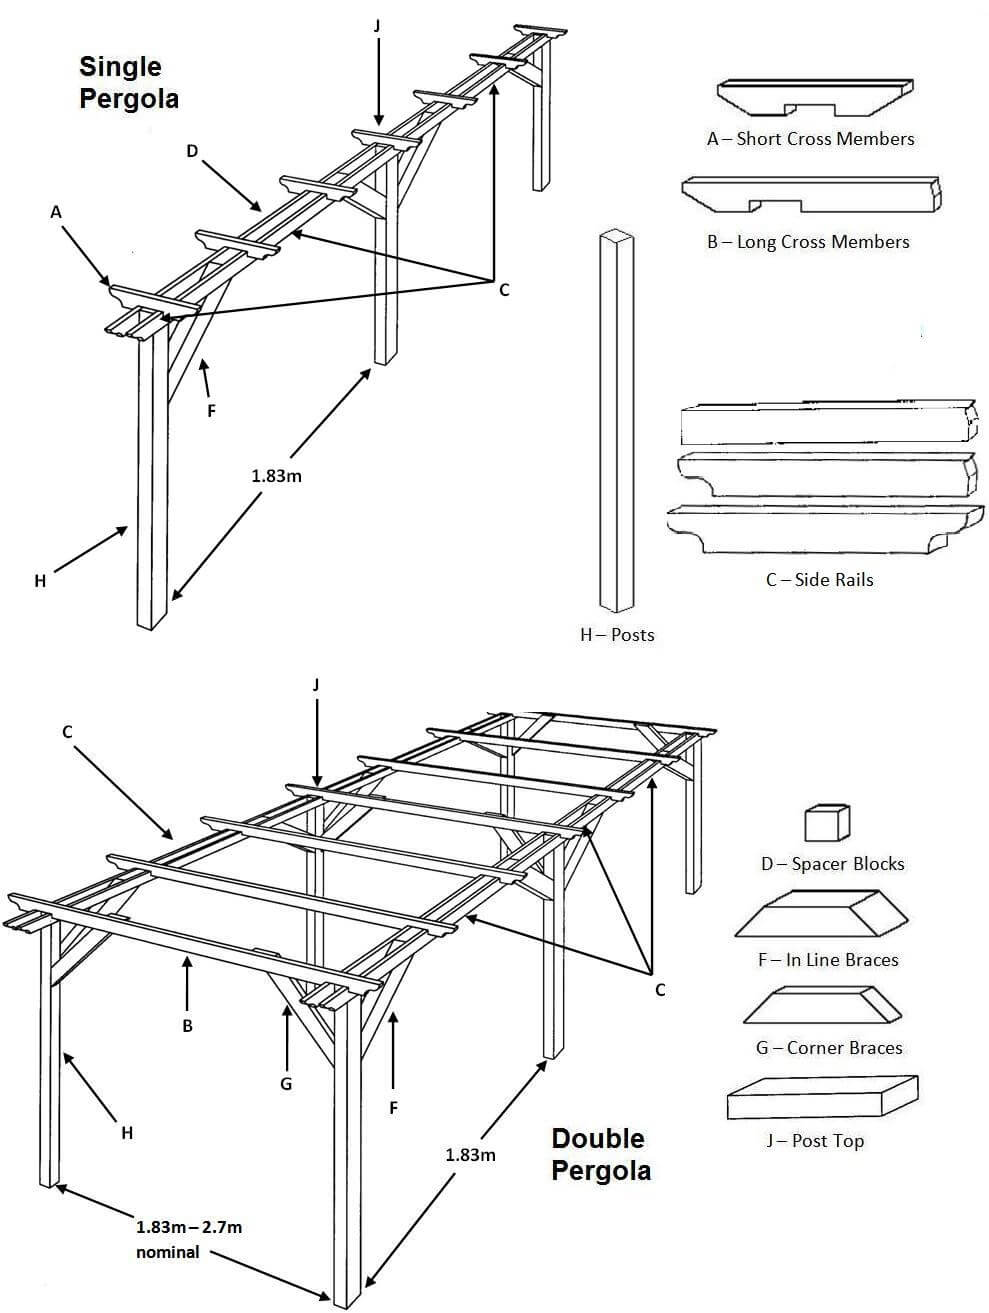 Secret garden collection pergolas components jacksons fencing note illustrations both show 2 bay examples for an illustration displaying where the components are fitted on the pergolas baanklon Choice Image